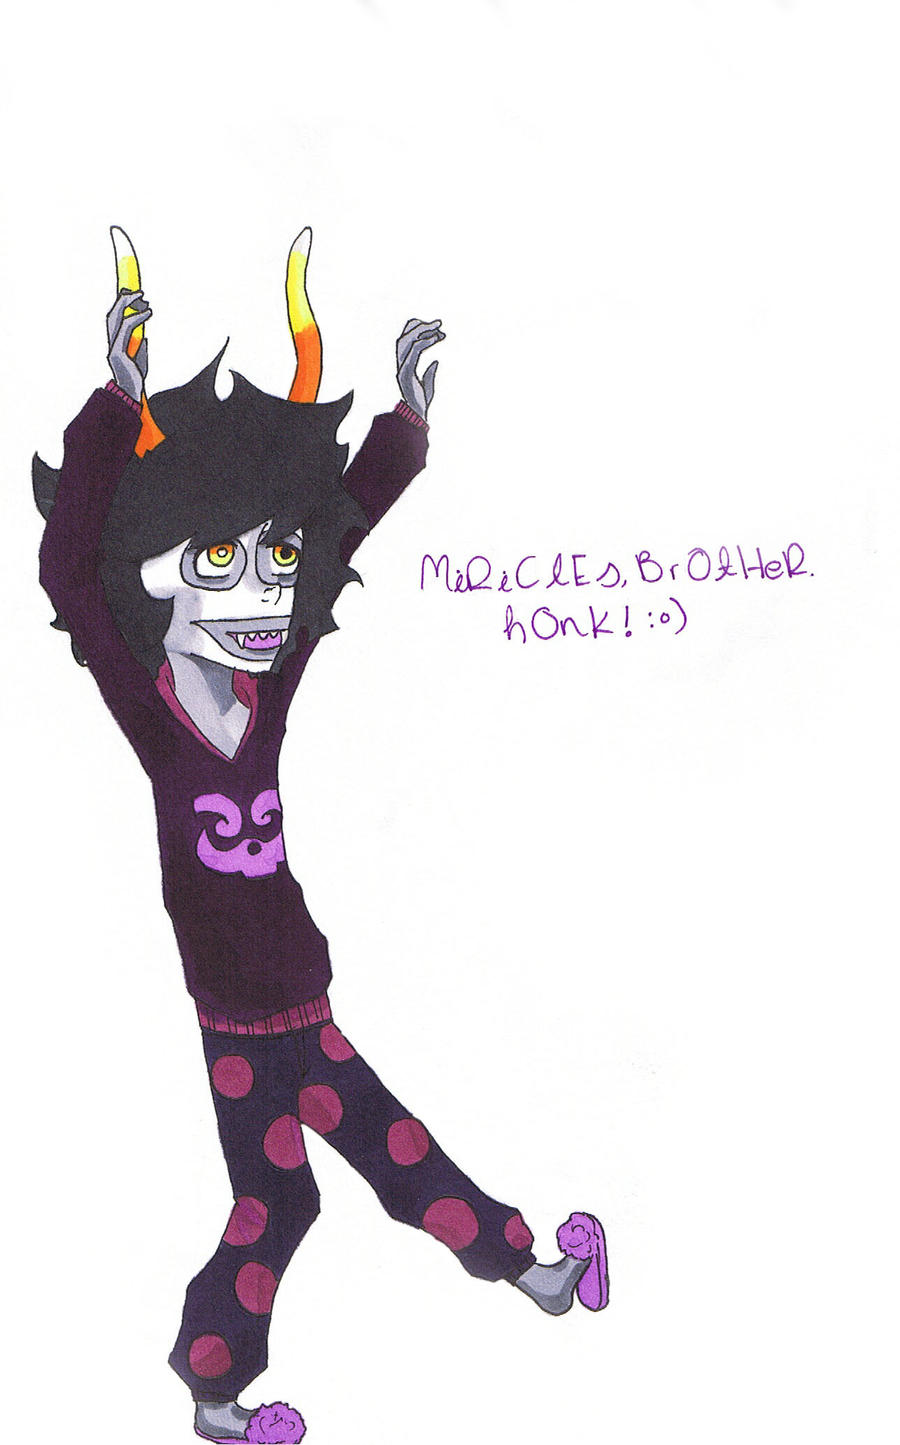 gamzee makara talksprite - photo #31